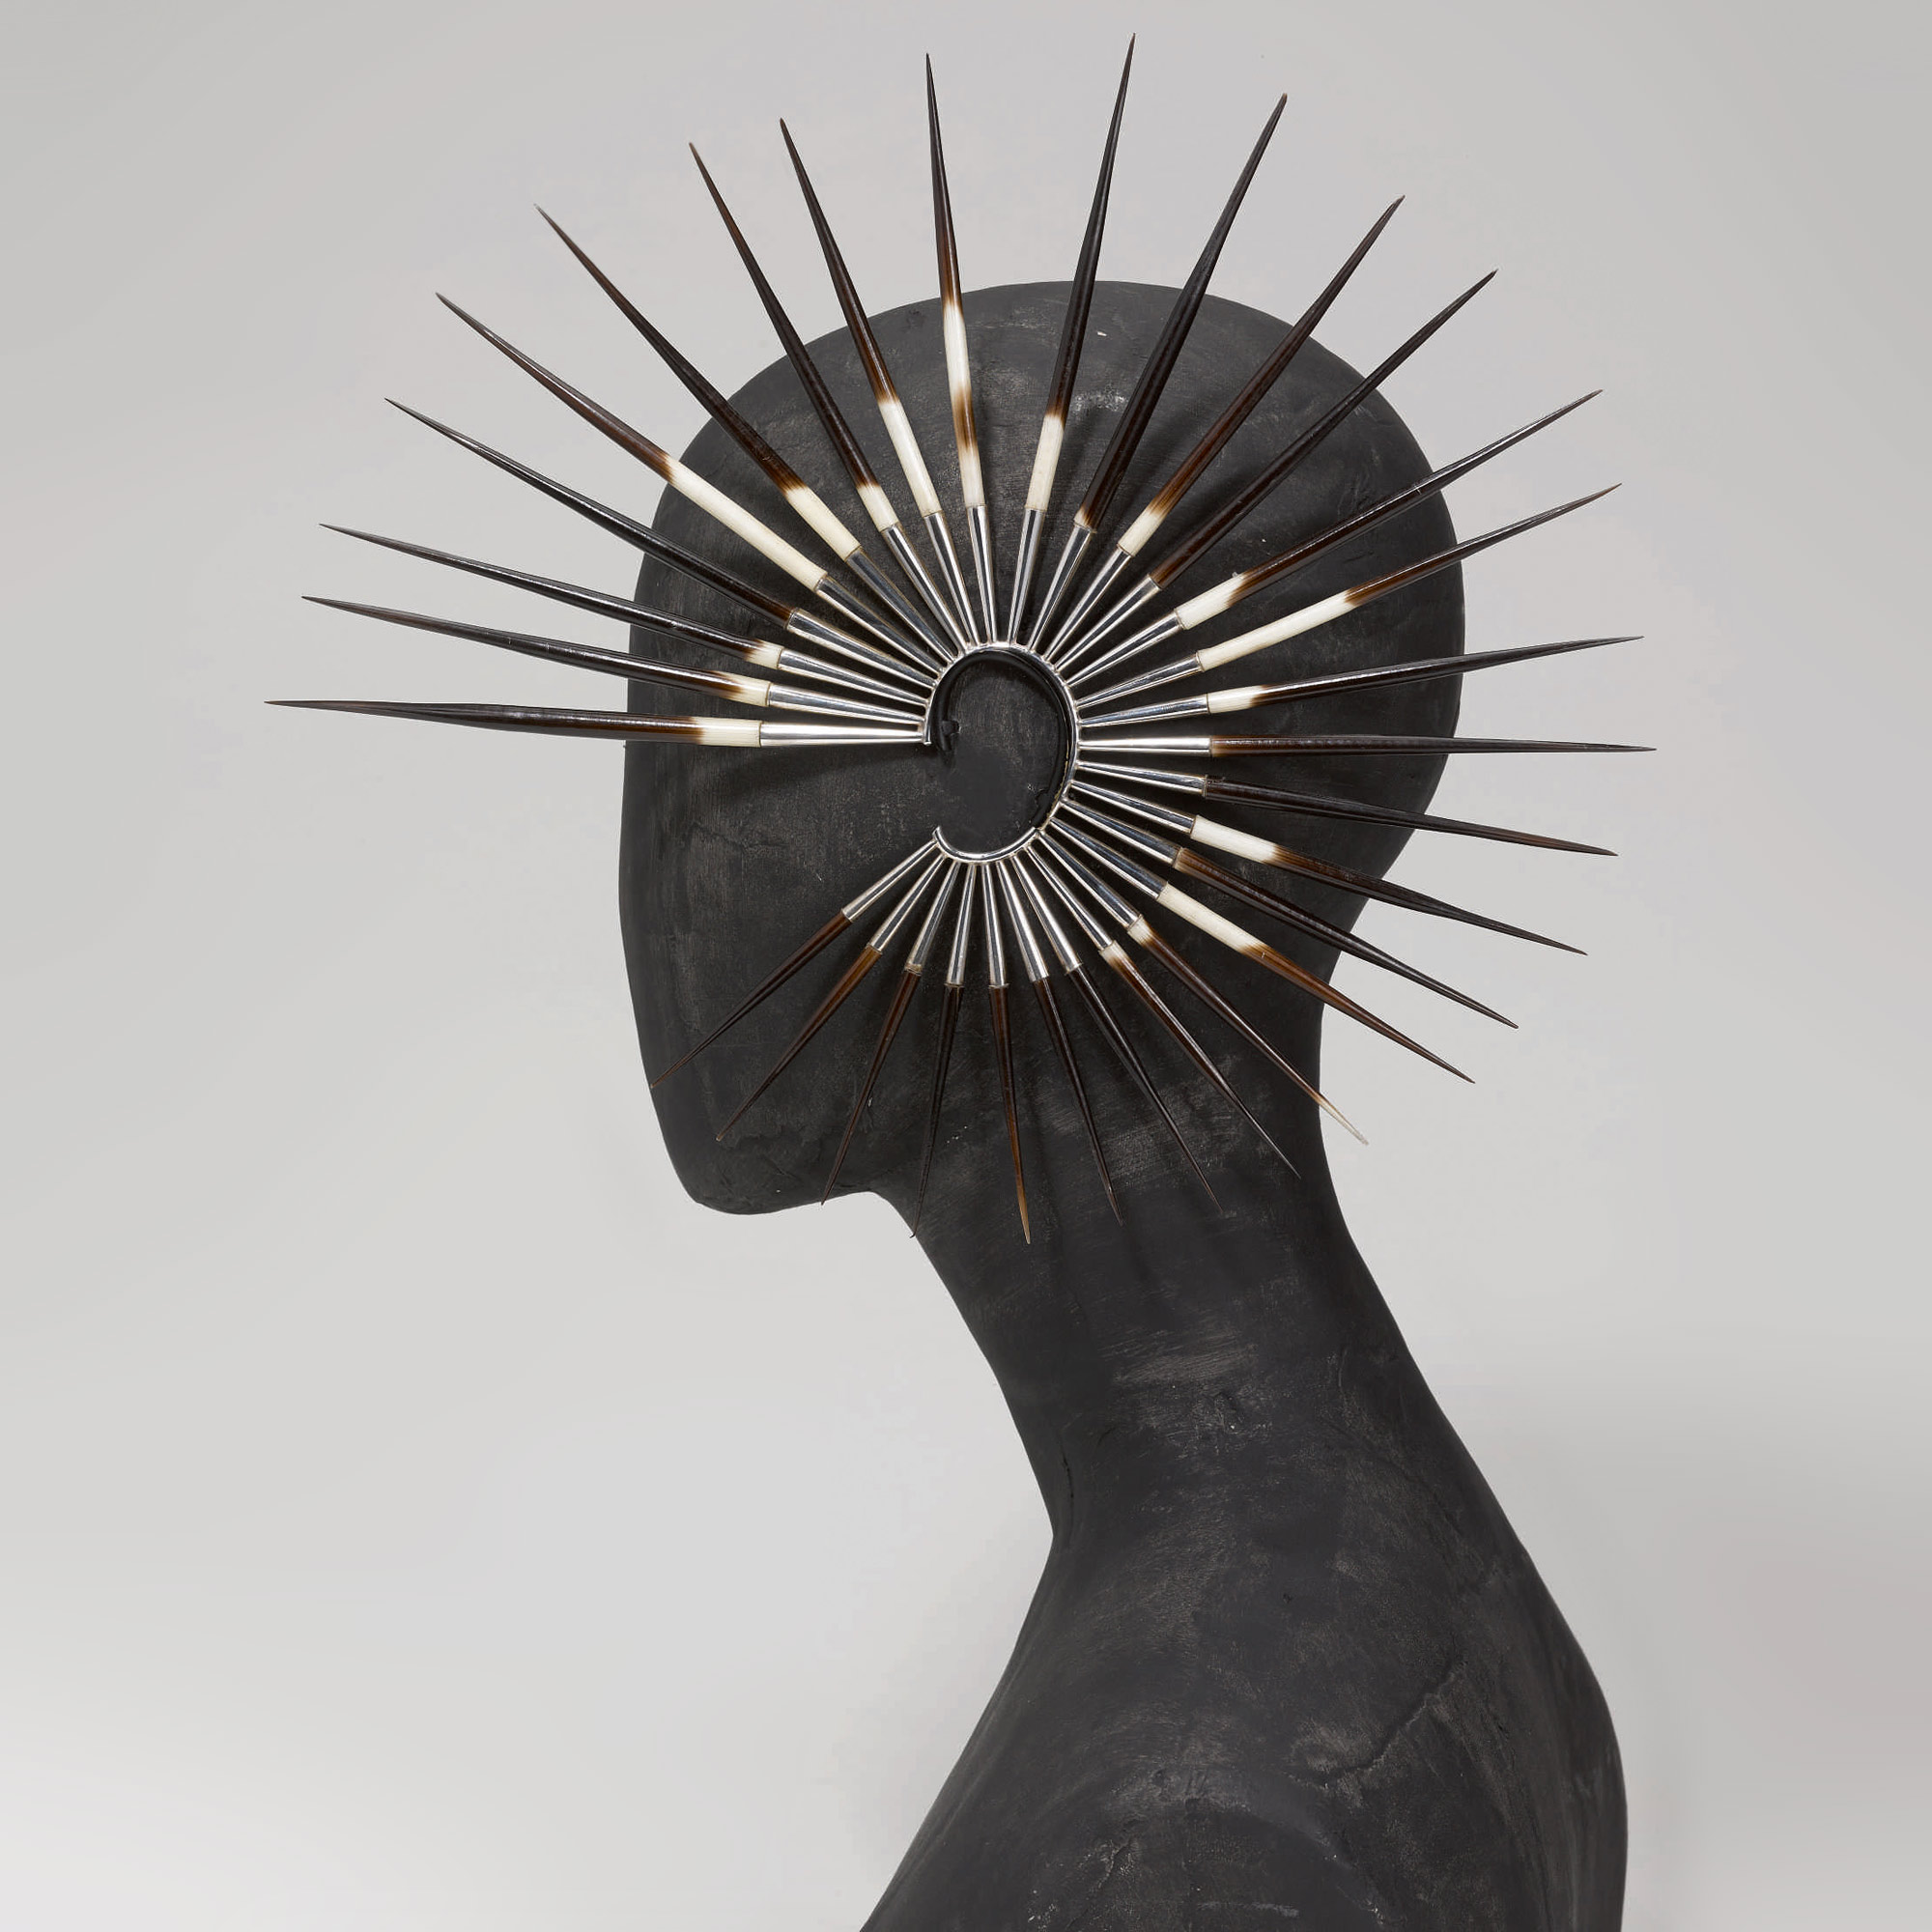 Porcupine quill earrings, Alexander McQueen's 'Irere' collection, Spring/Summer 2003